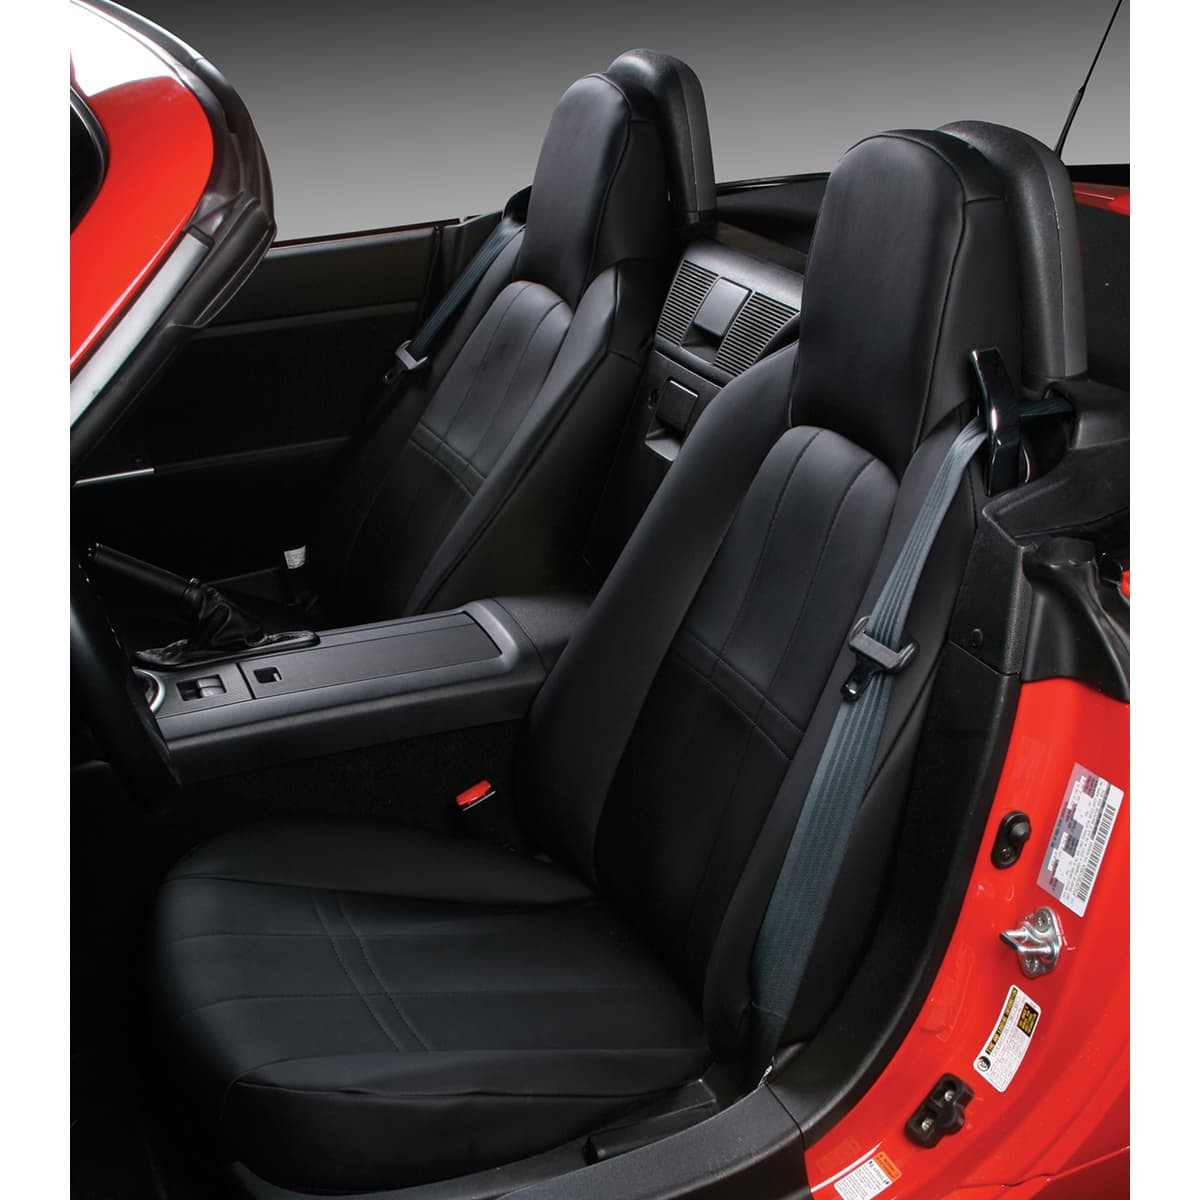 Attractive Premium Leatherette Seat Covers